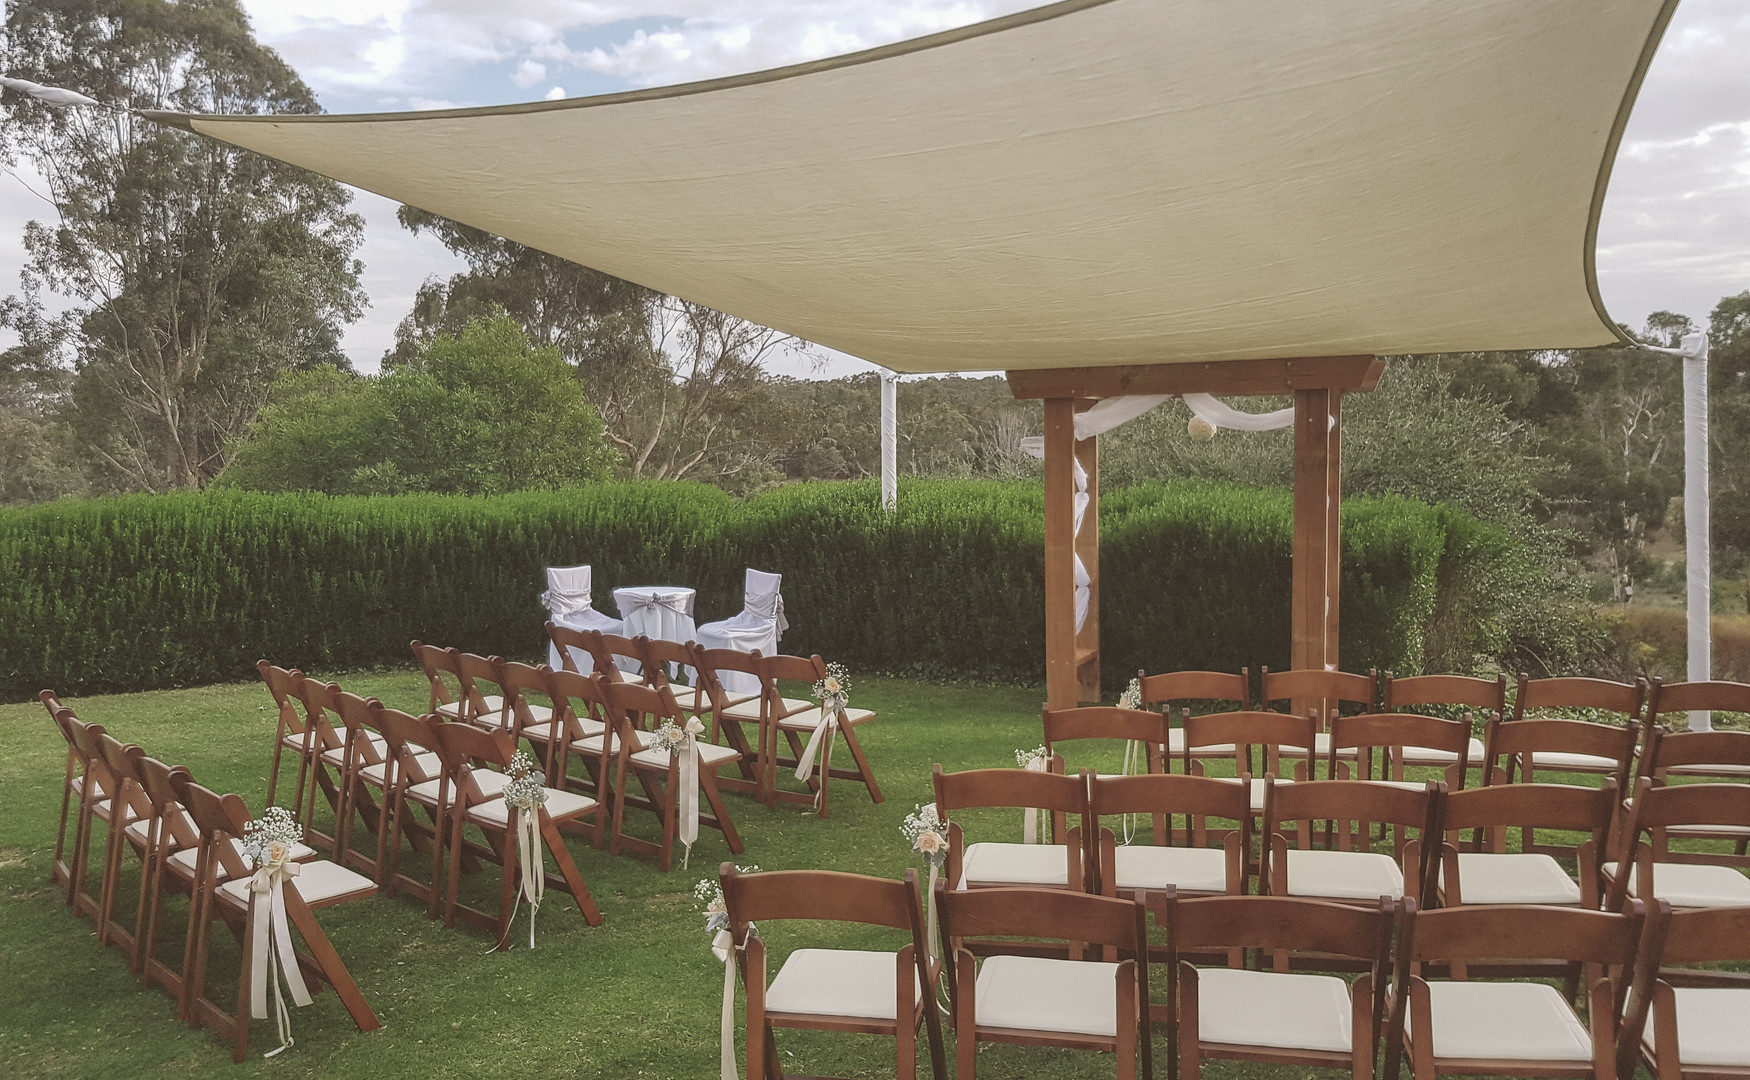 The Ceremony Lawn_Day_20180413_145516.jp